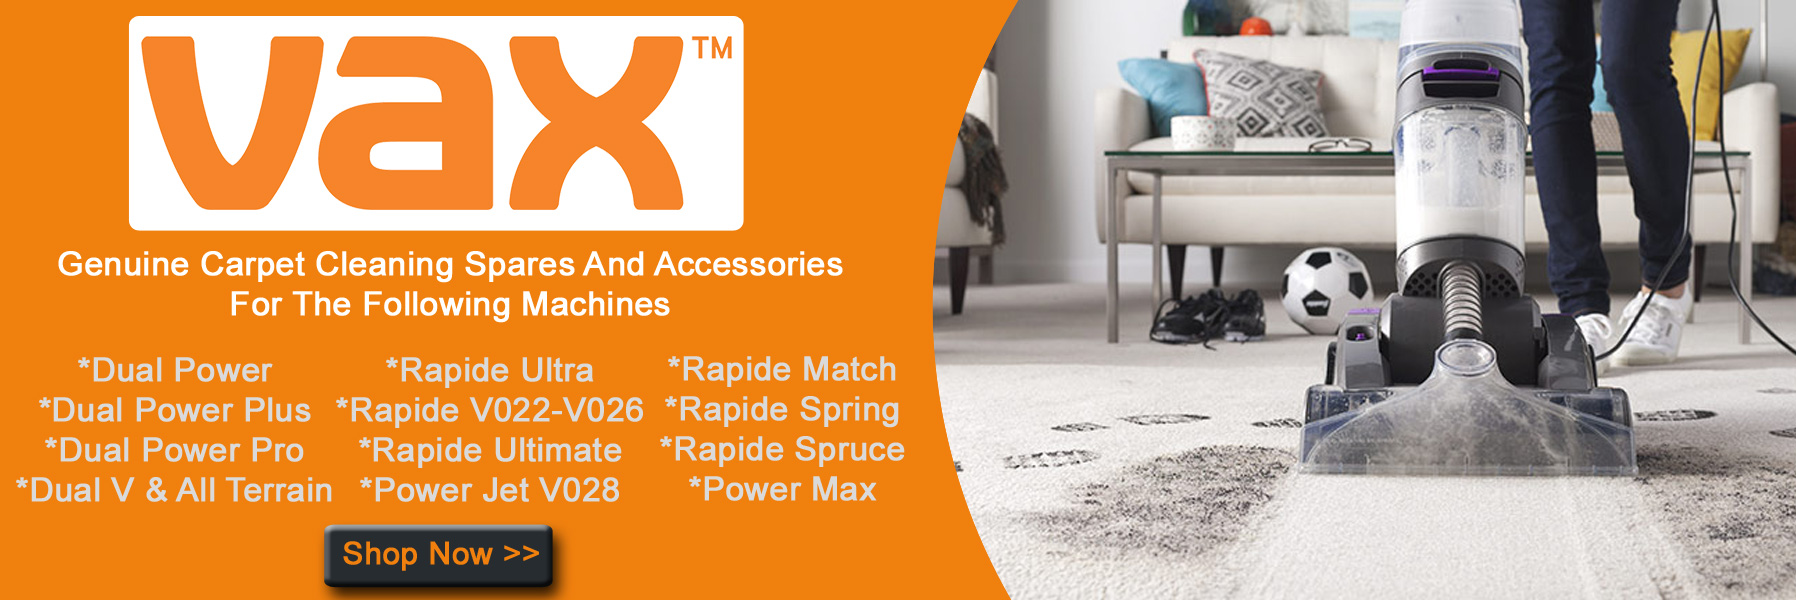 VAX Carpet Cleaner Spares And Accessories